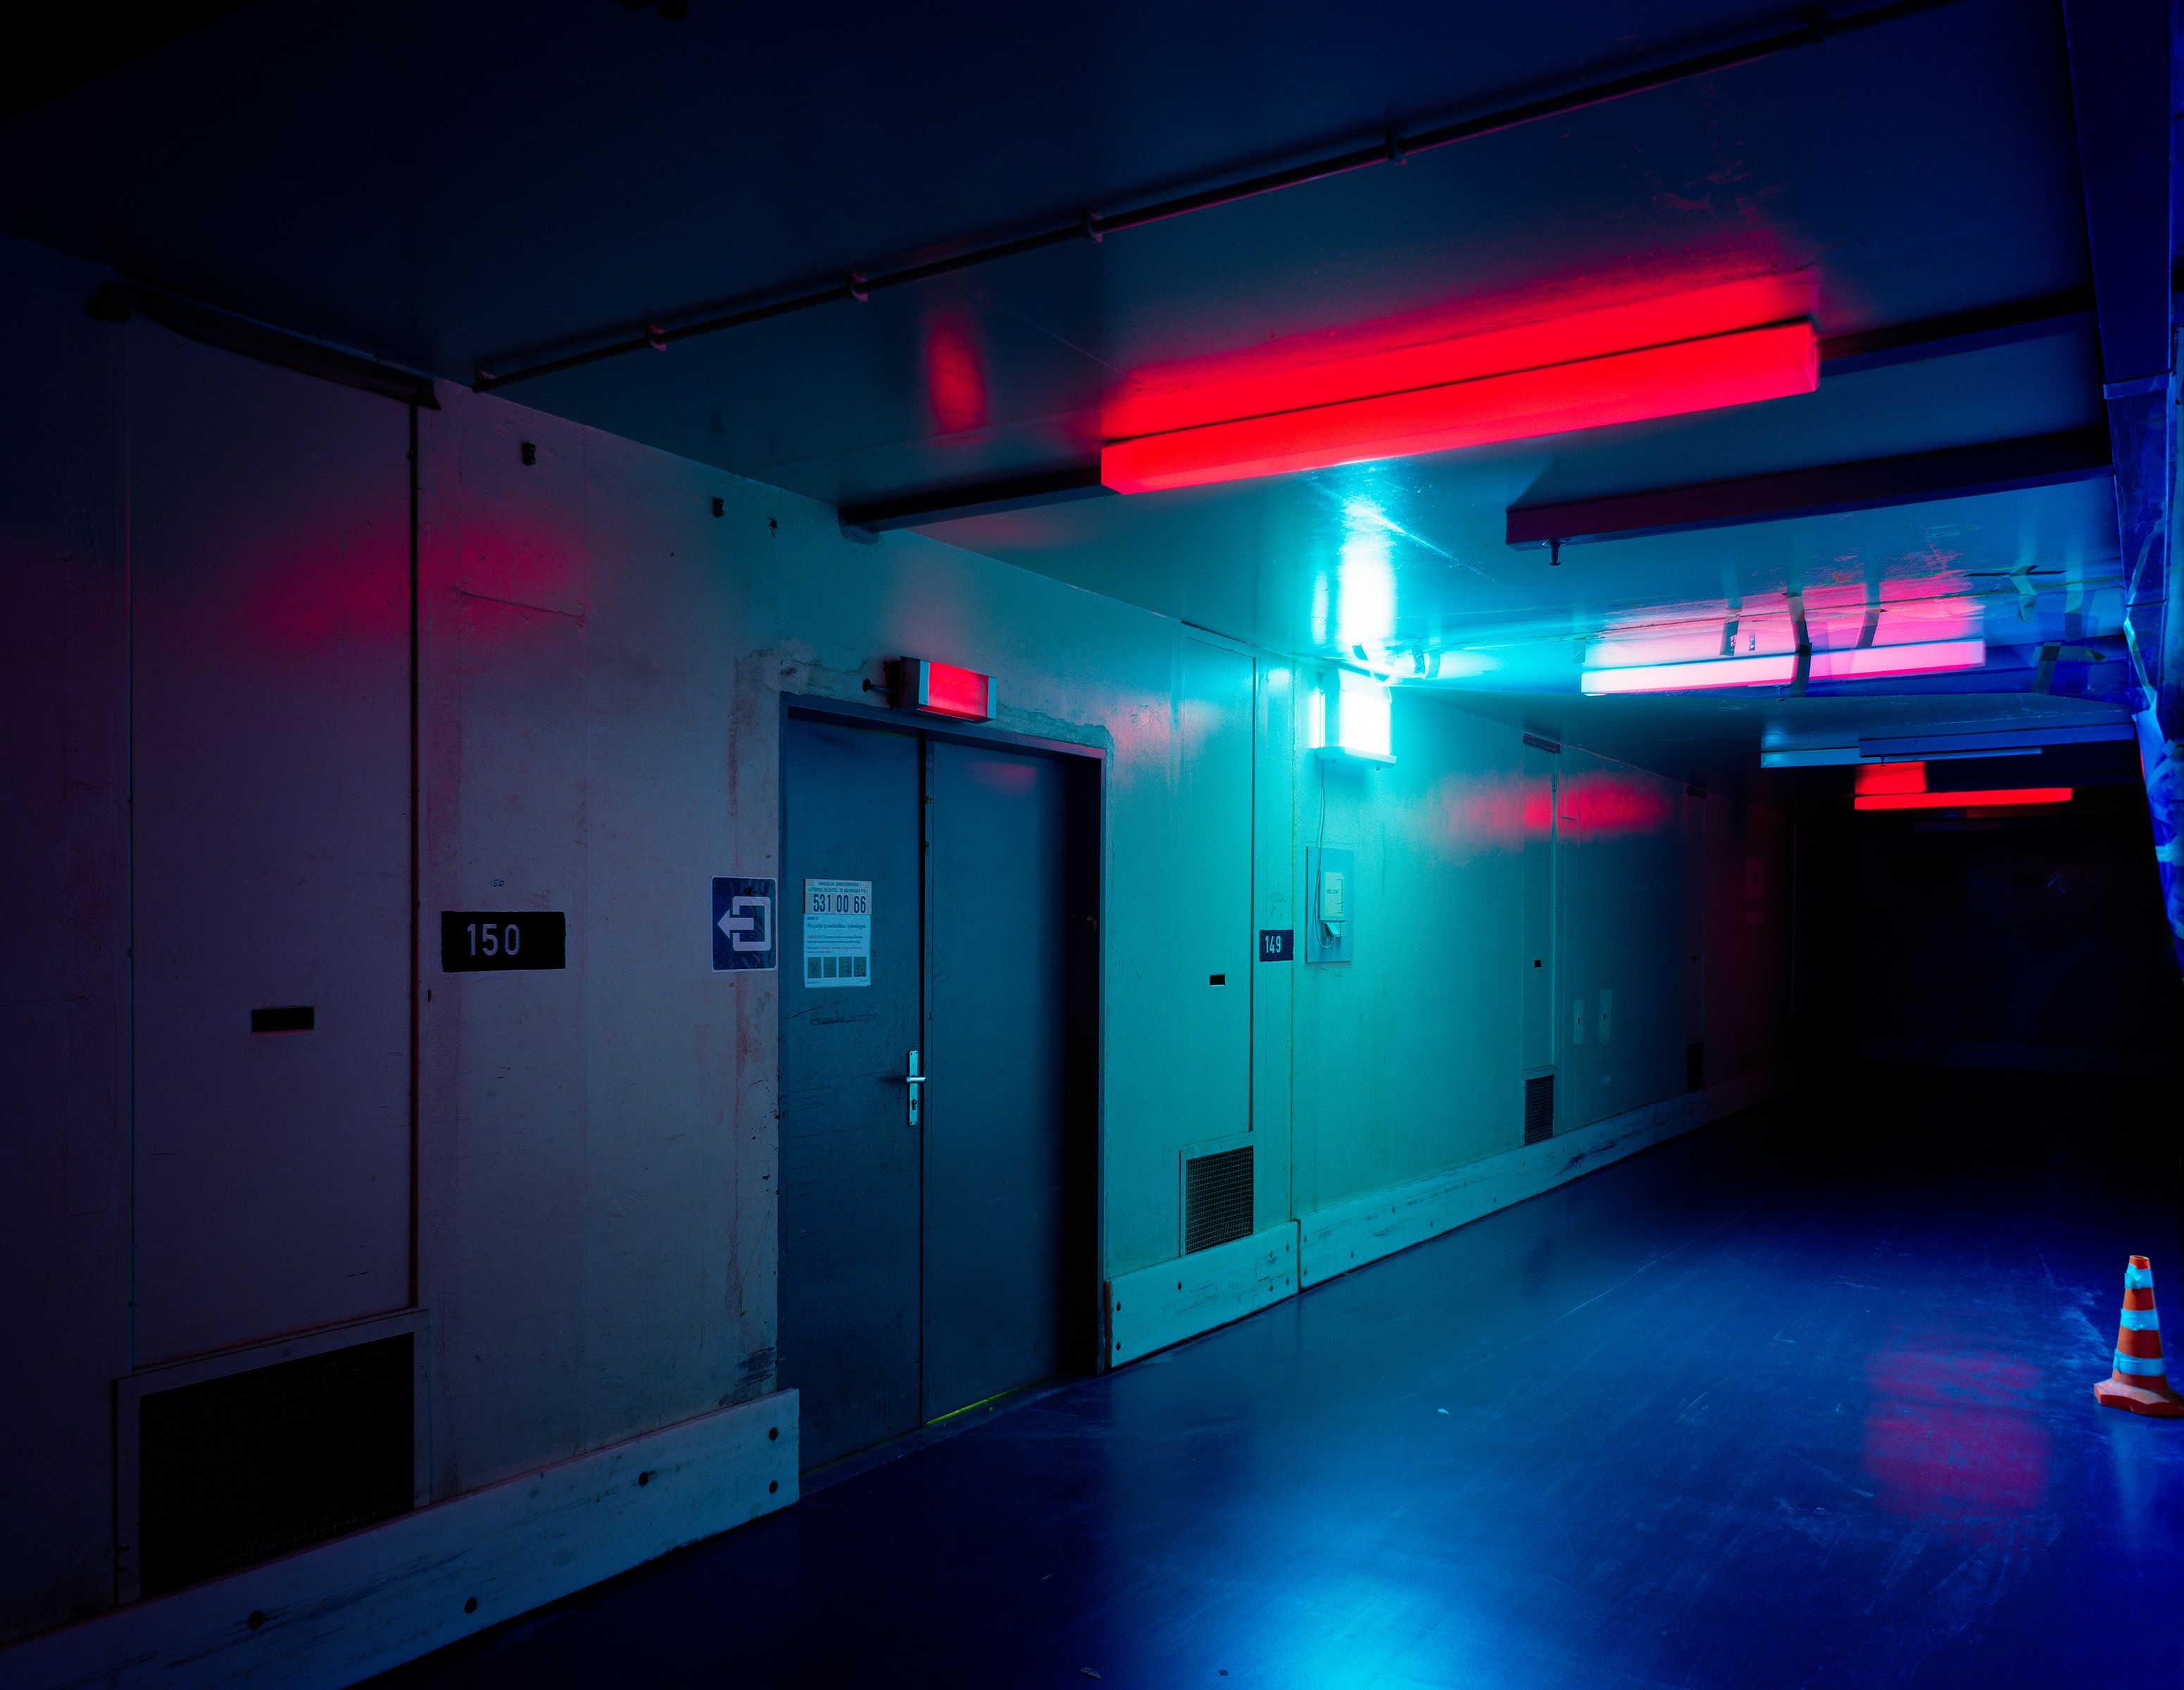 we get so disconnected | dreams | Pinterest | Neon, Lights and ...